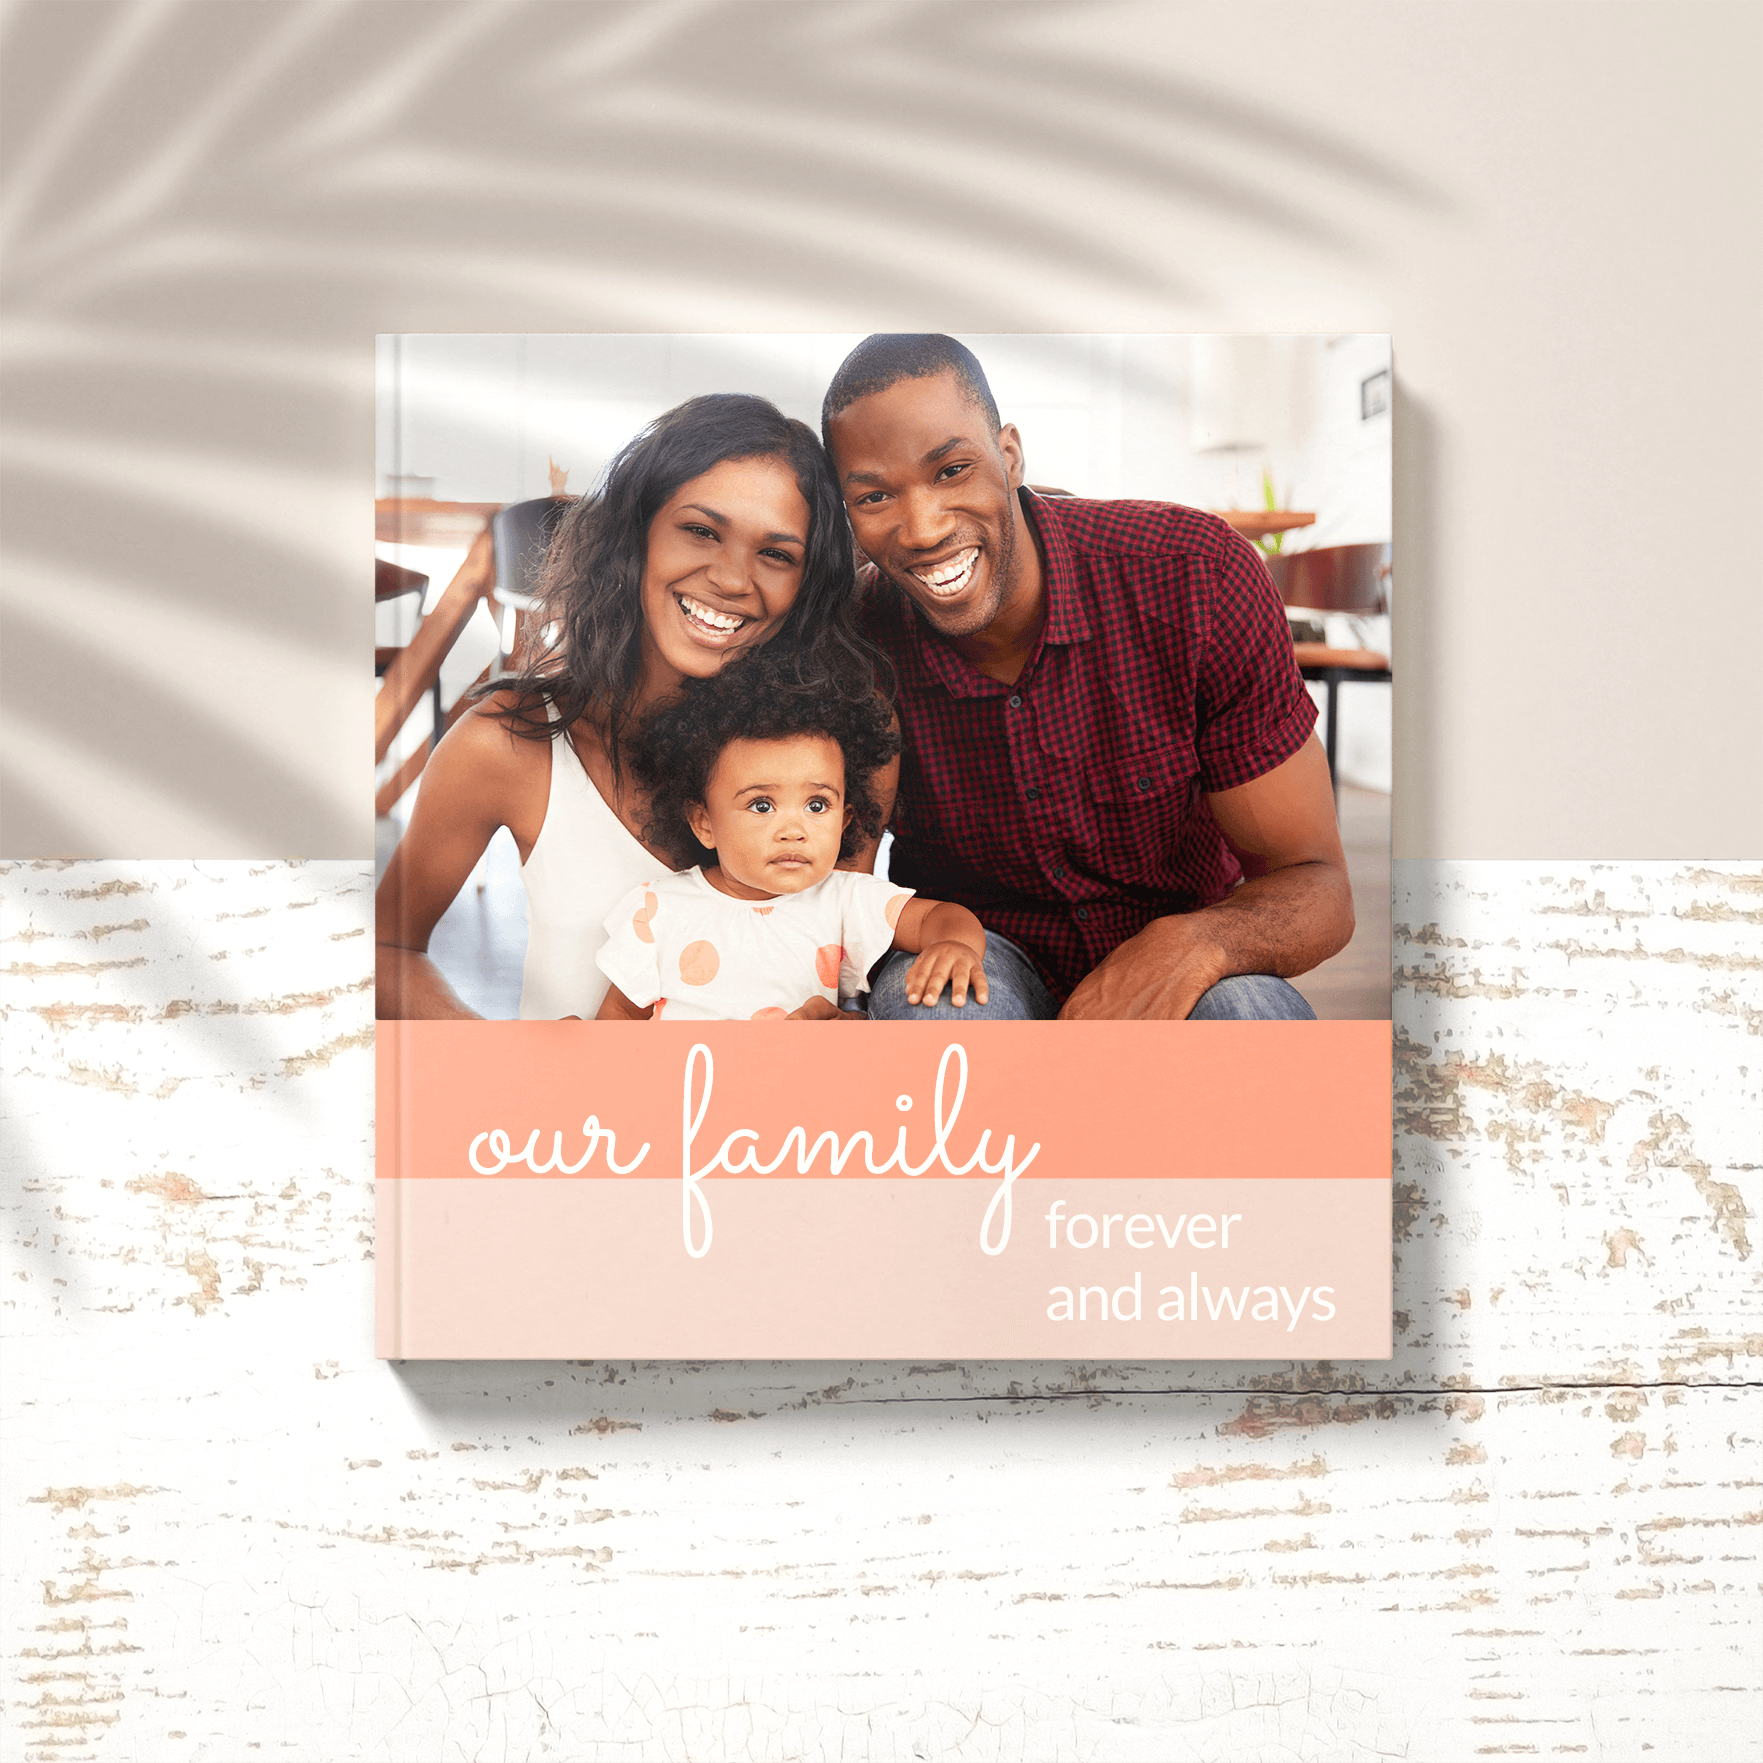 Create a new family photo album as a gift for your holiday exchange